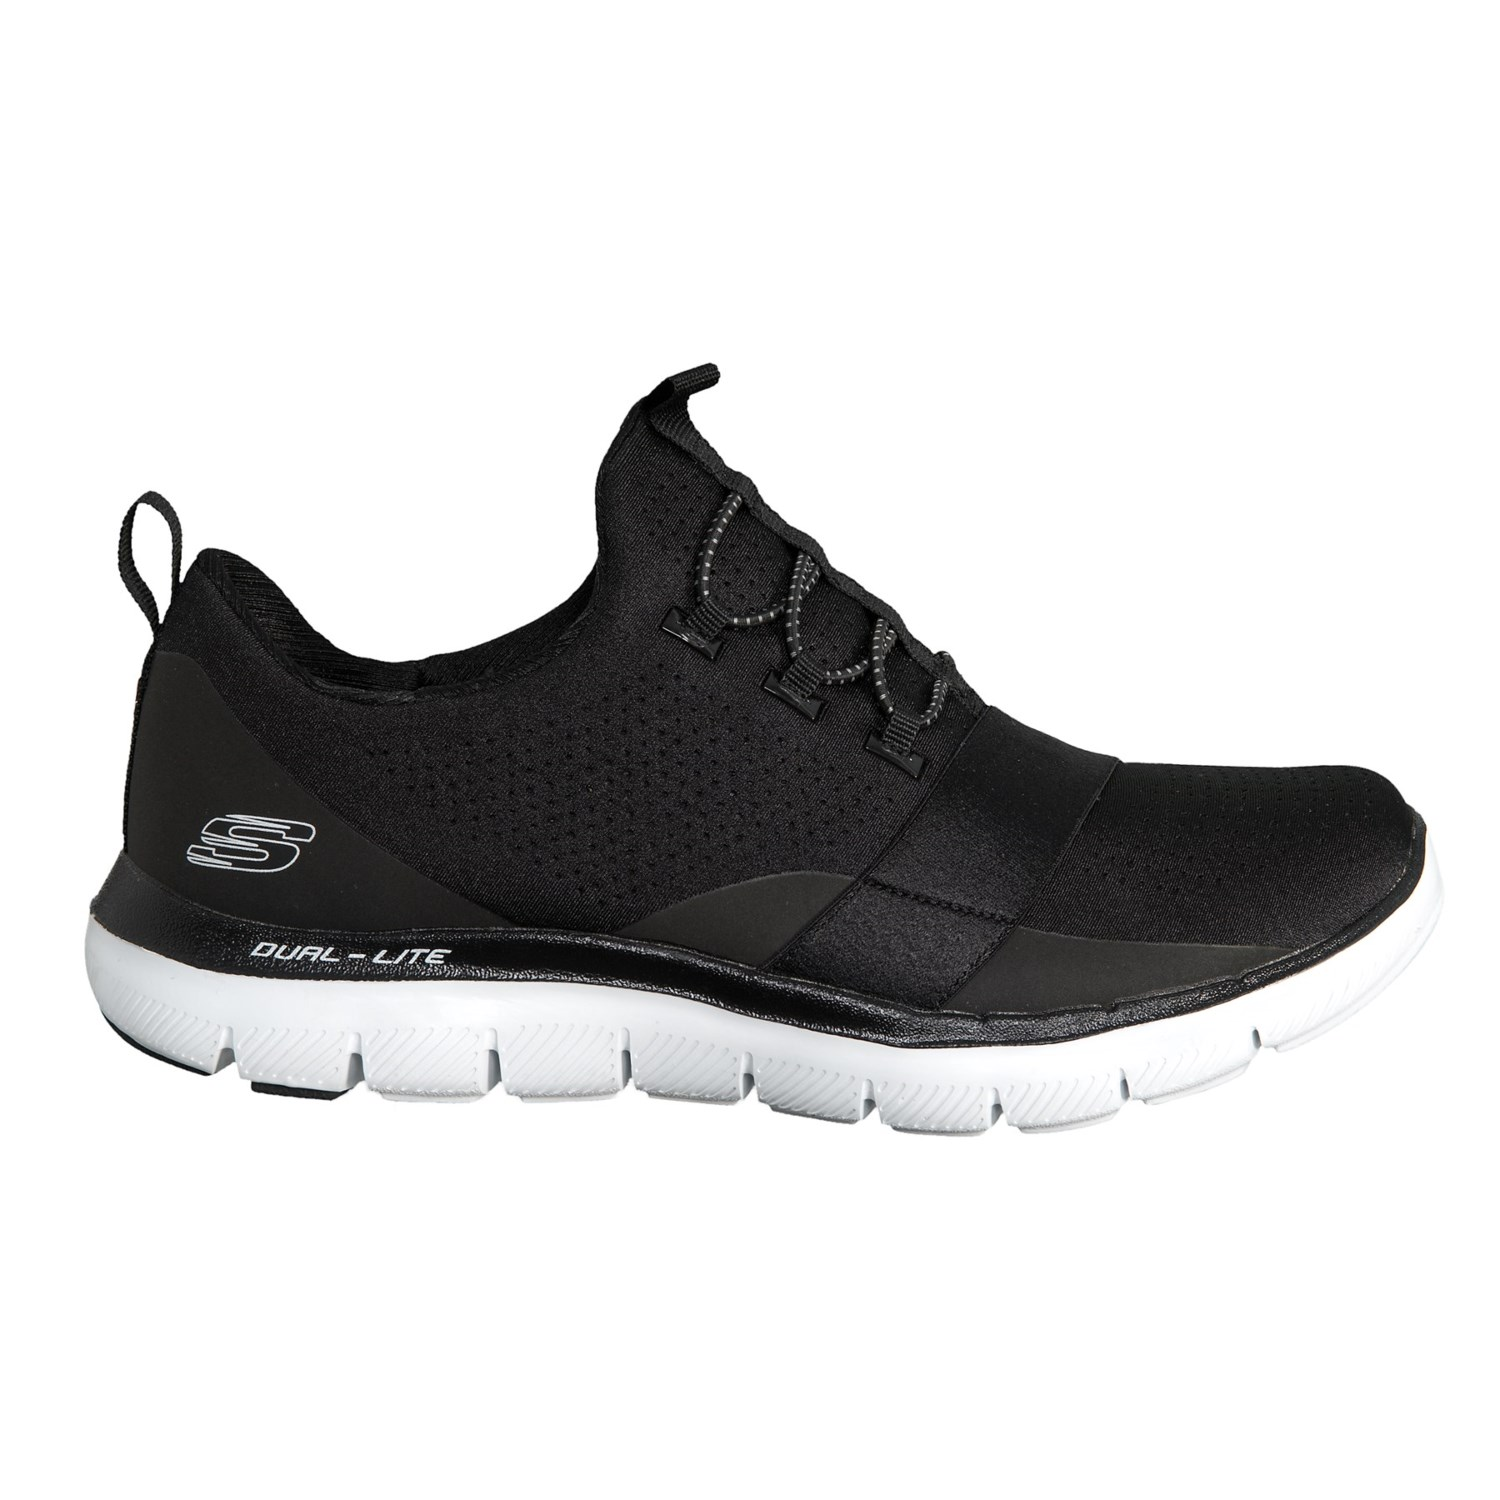 abefdcf07df46 Skechers Flex Appeal 2.0 Good-Hearted Shoes (For Women) - Save 41%